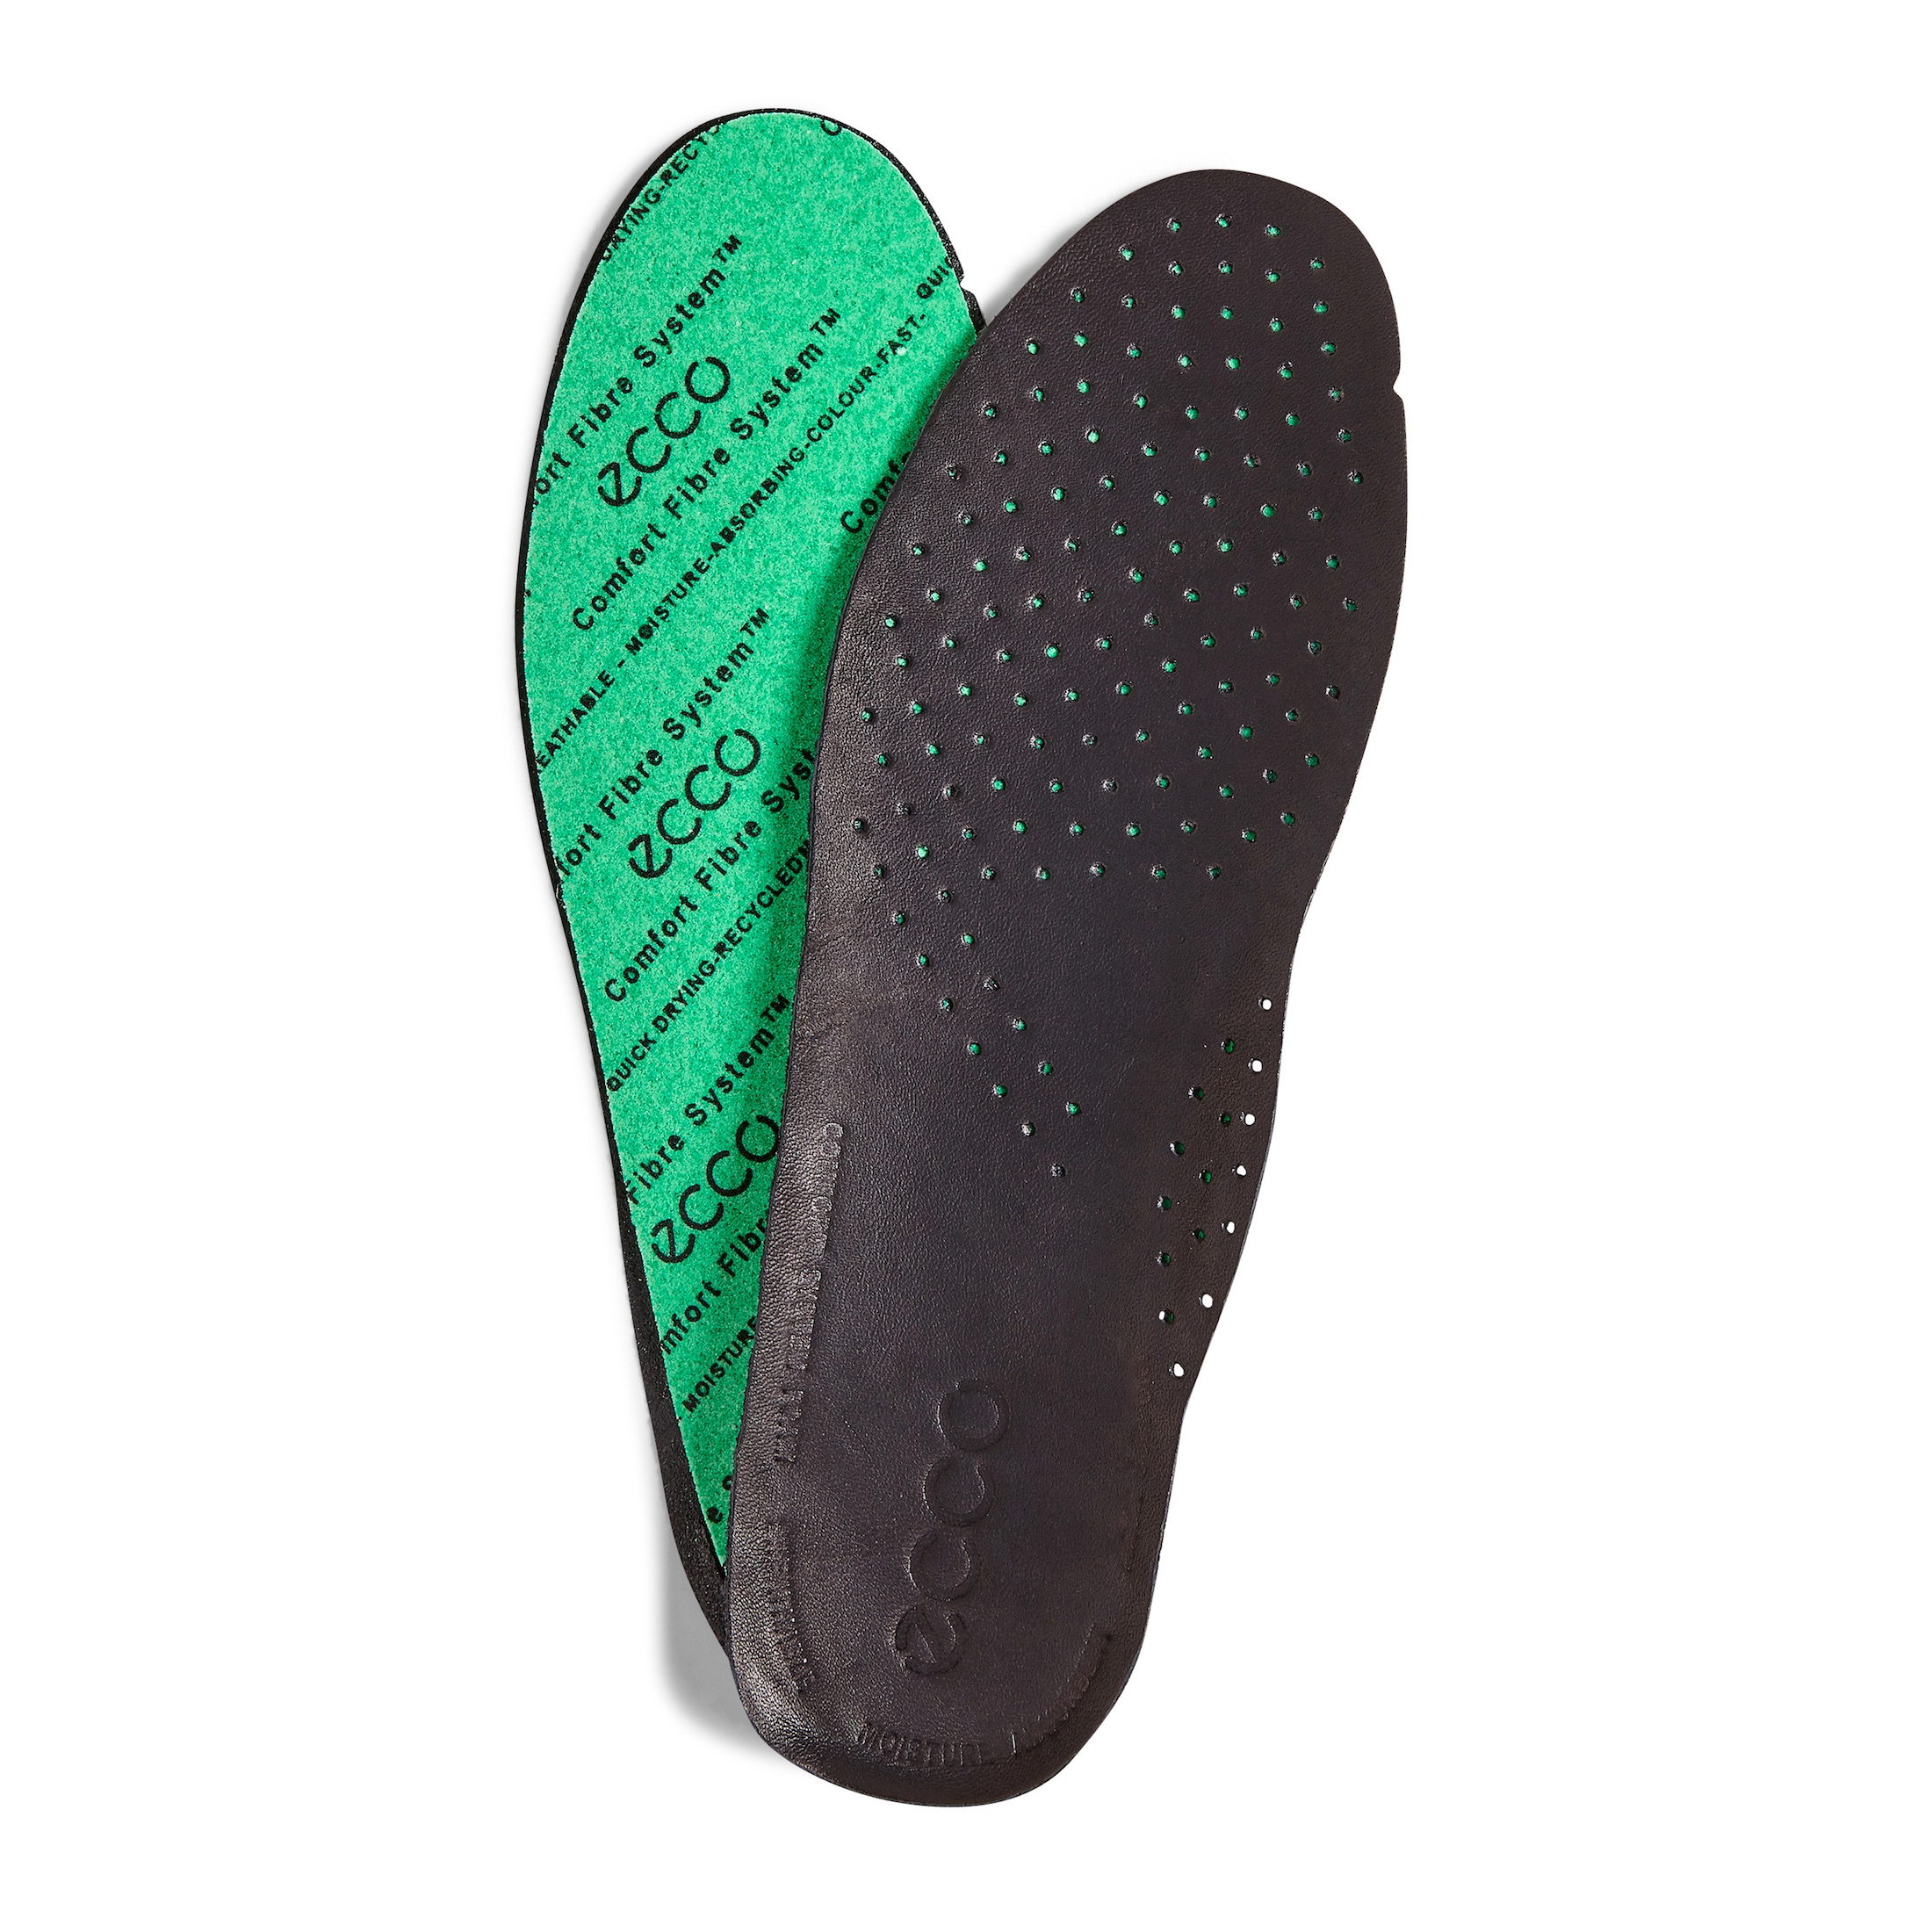 Image of ECCO Mens Cfs Leather Insole